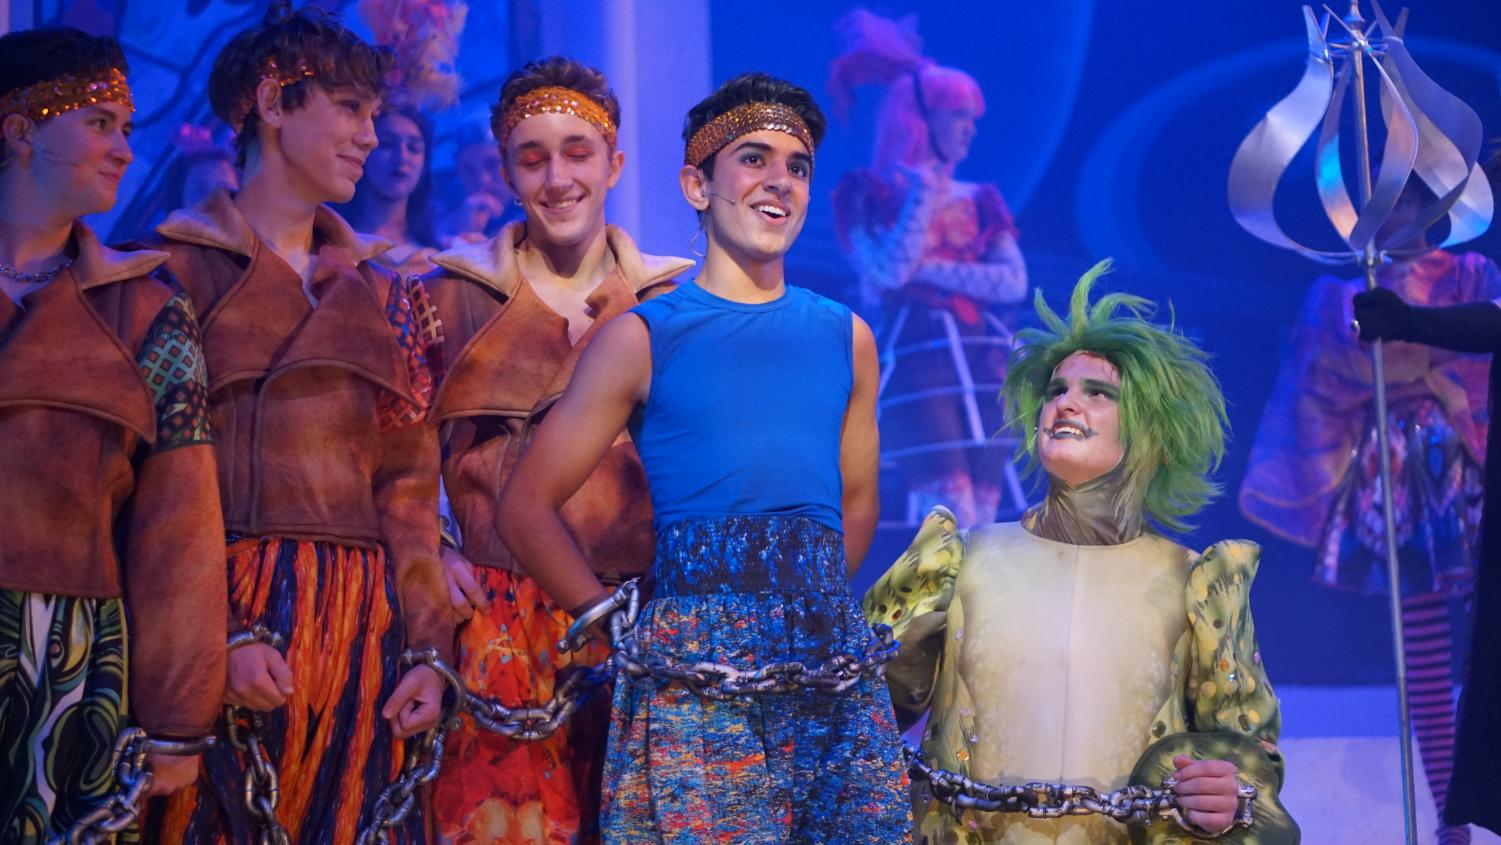 MITE TIME: The Starmites, played by juniors Javier Garcia, Sam Richter, Duval Bingham look at their leader Spacepunk, played by junior Tosh Arora as he sings M'lady. Photo by Jazzabelle Davishines